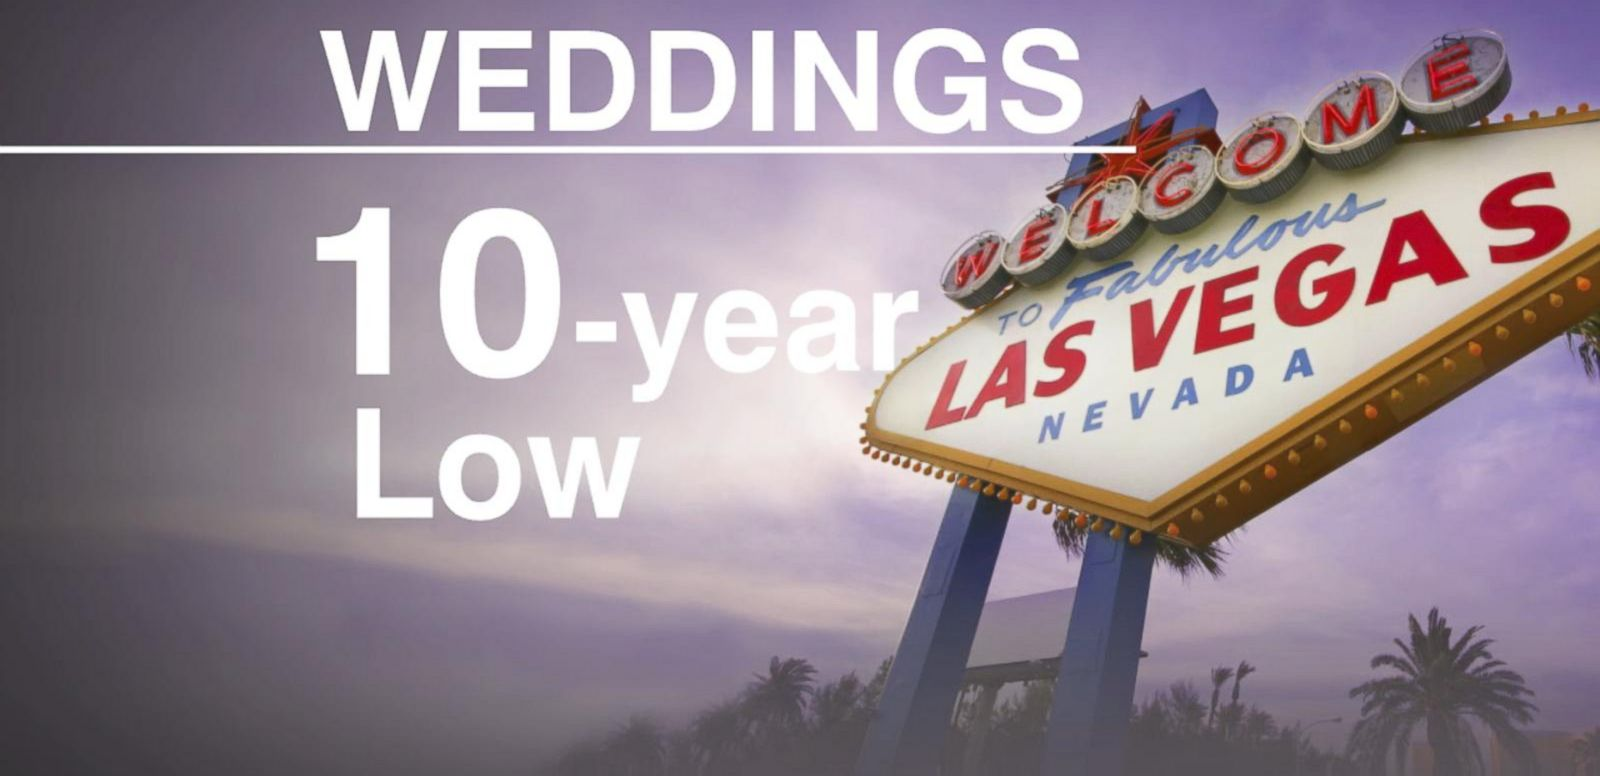 VIDEO: Honeymoon in Vegas Not What it Used to Be